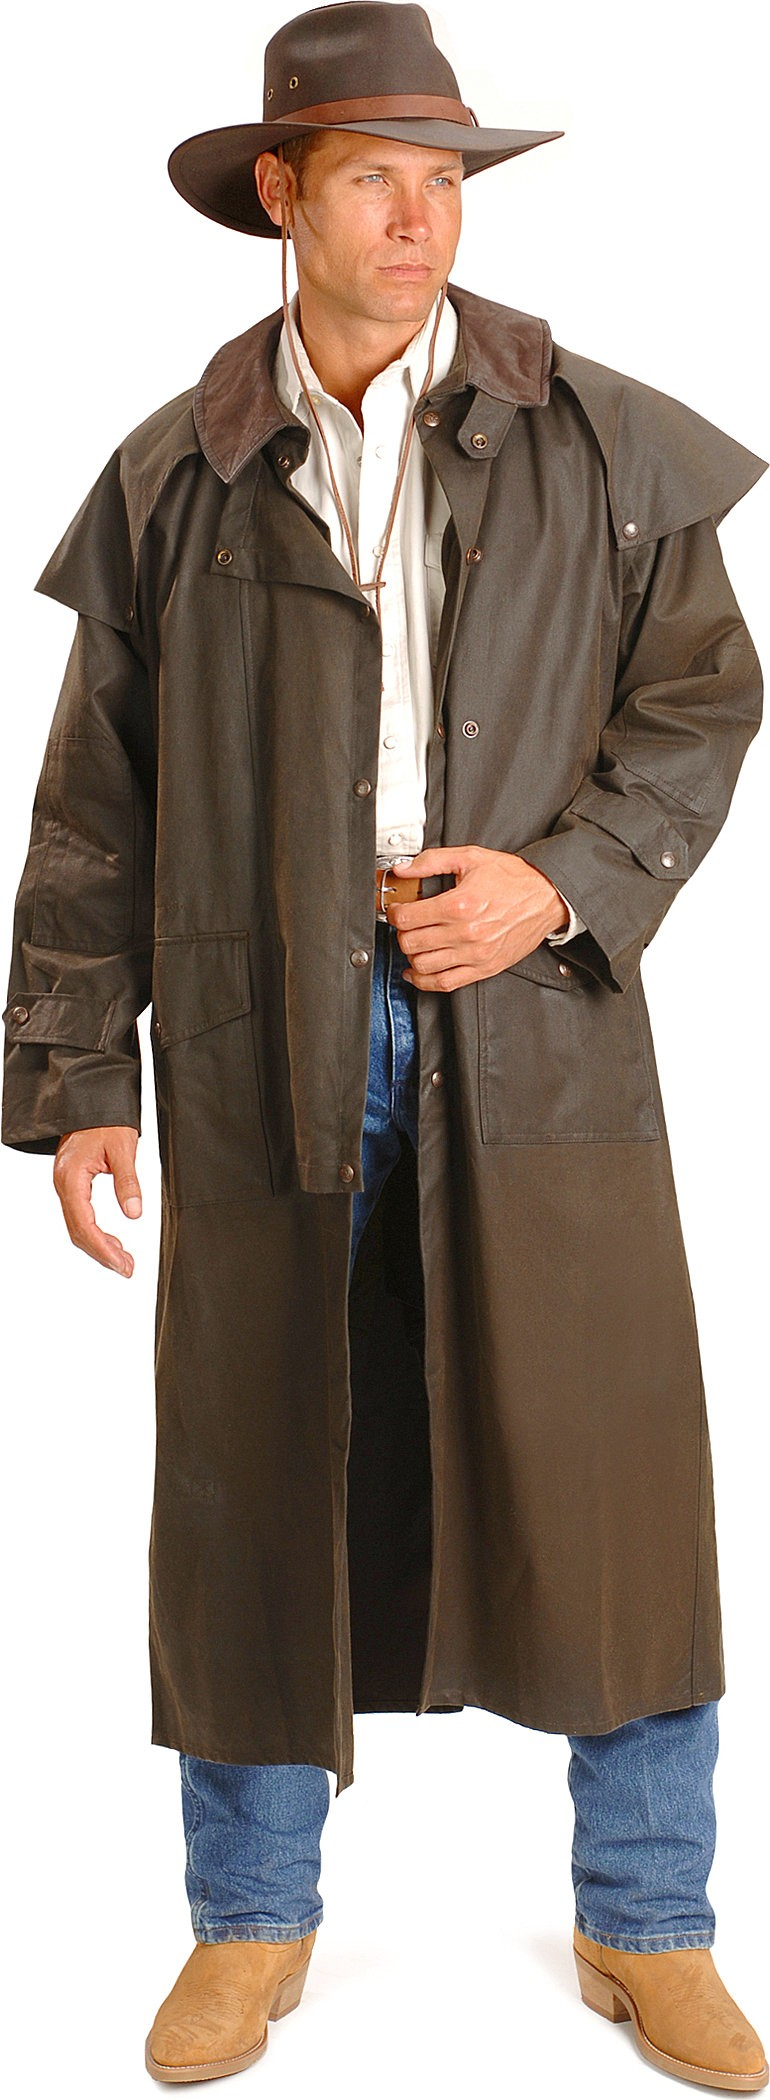 Long Oilskin Duster By Outback Trading Co Jacksons